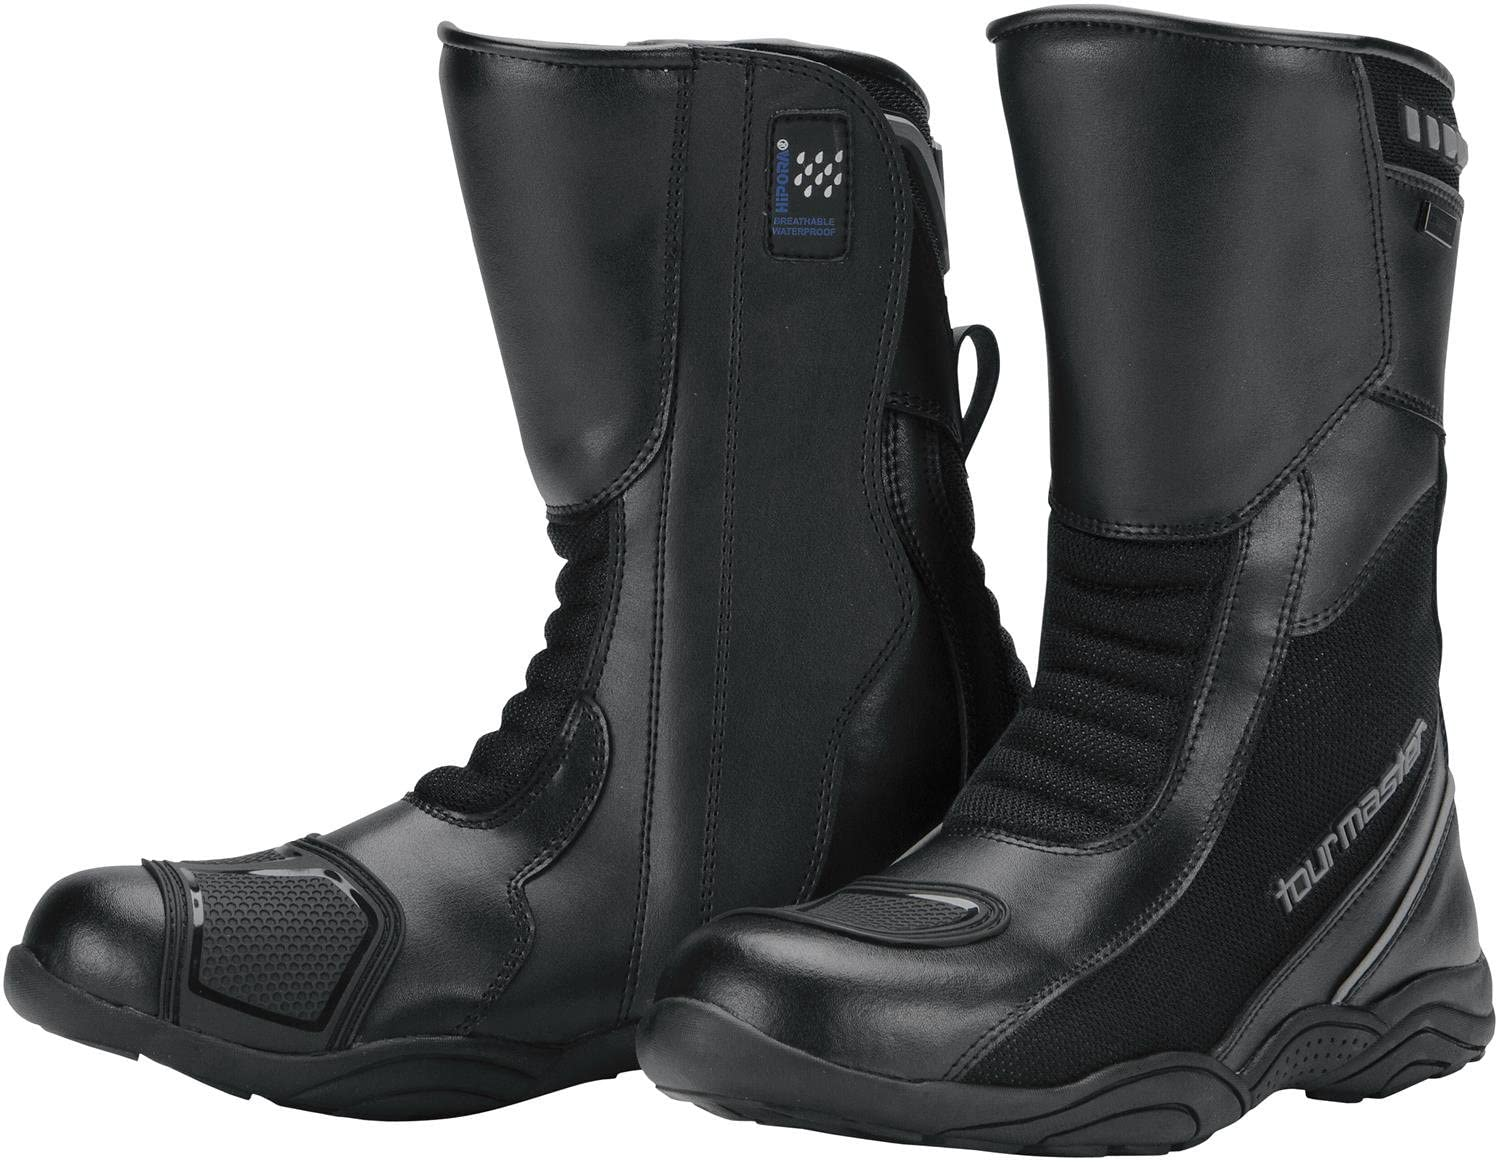 Tour Master Solution WP Air Road Mens Leather Sports Bike Motorcycle Boots - Black/Size 8